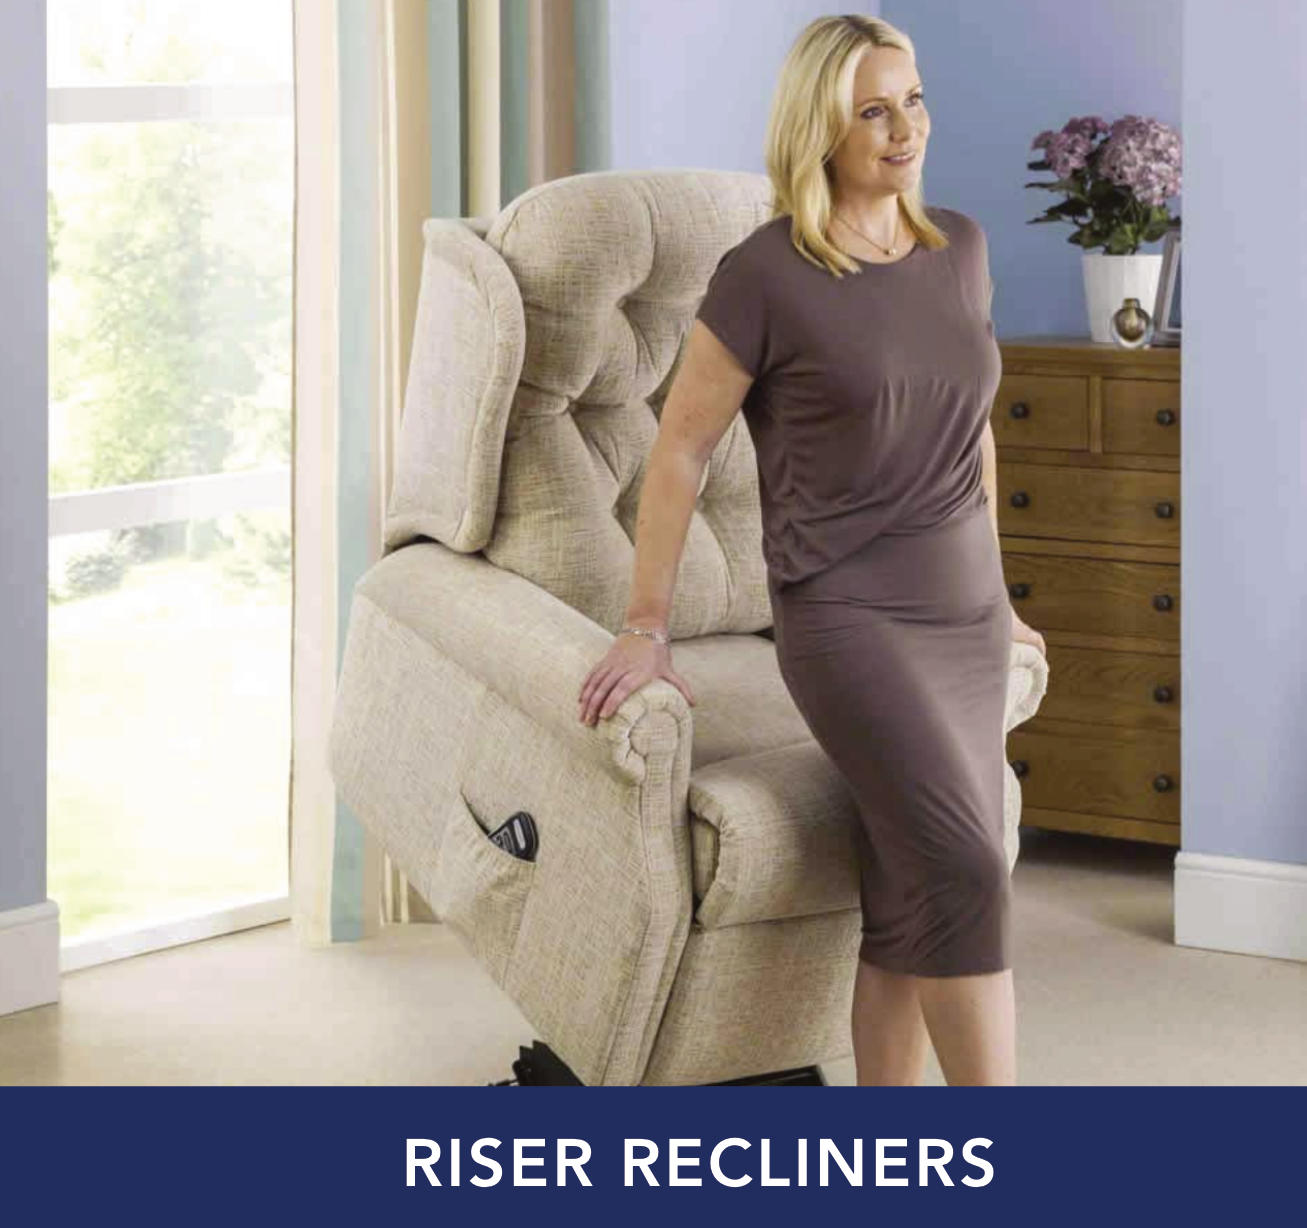 Riser Recliners Group Page Link